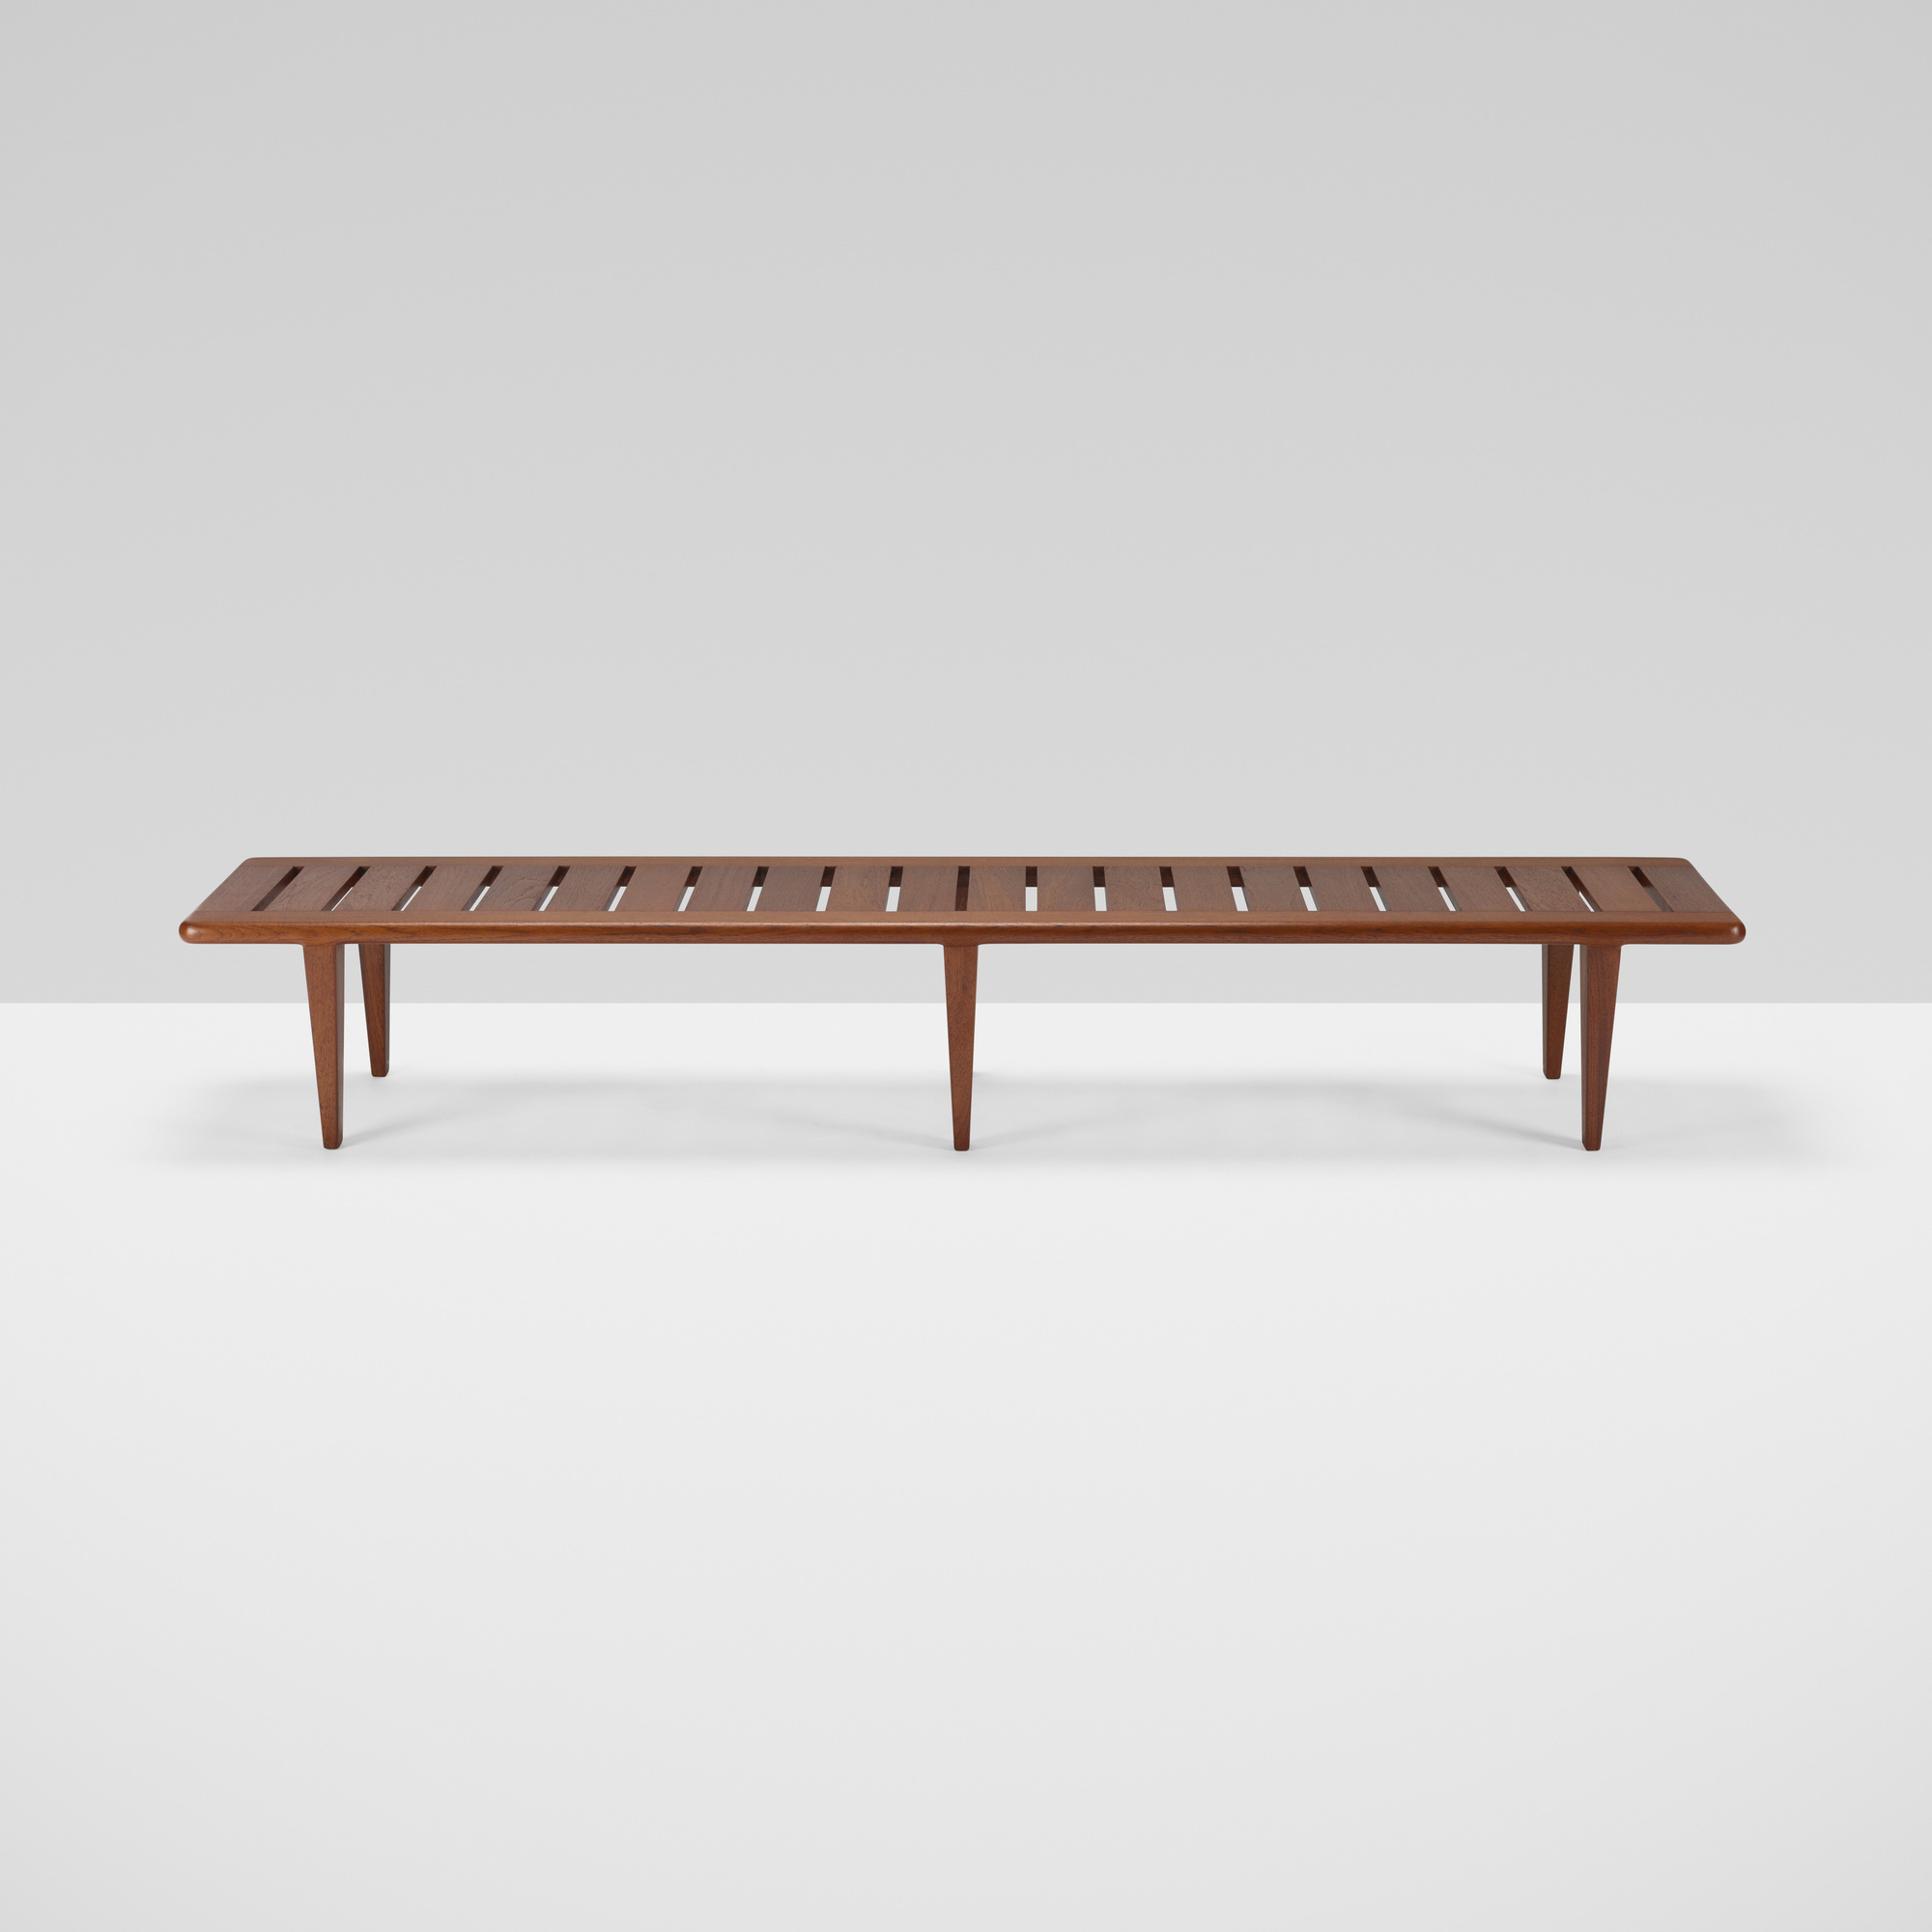 371: Hans J. Wegner / bench (2 of 3)